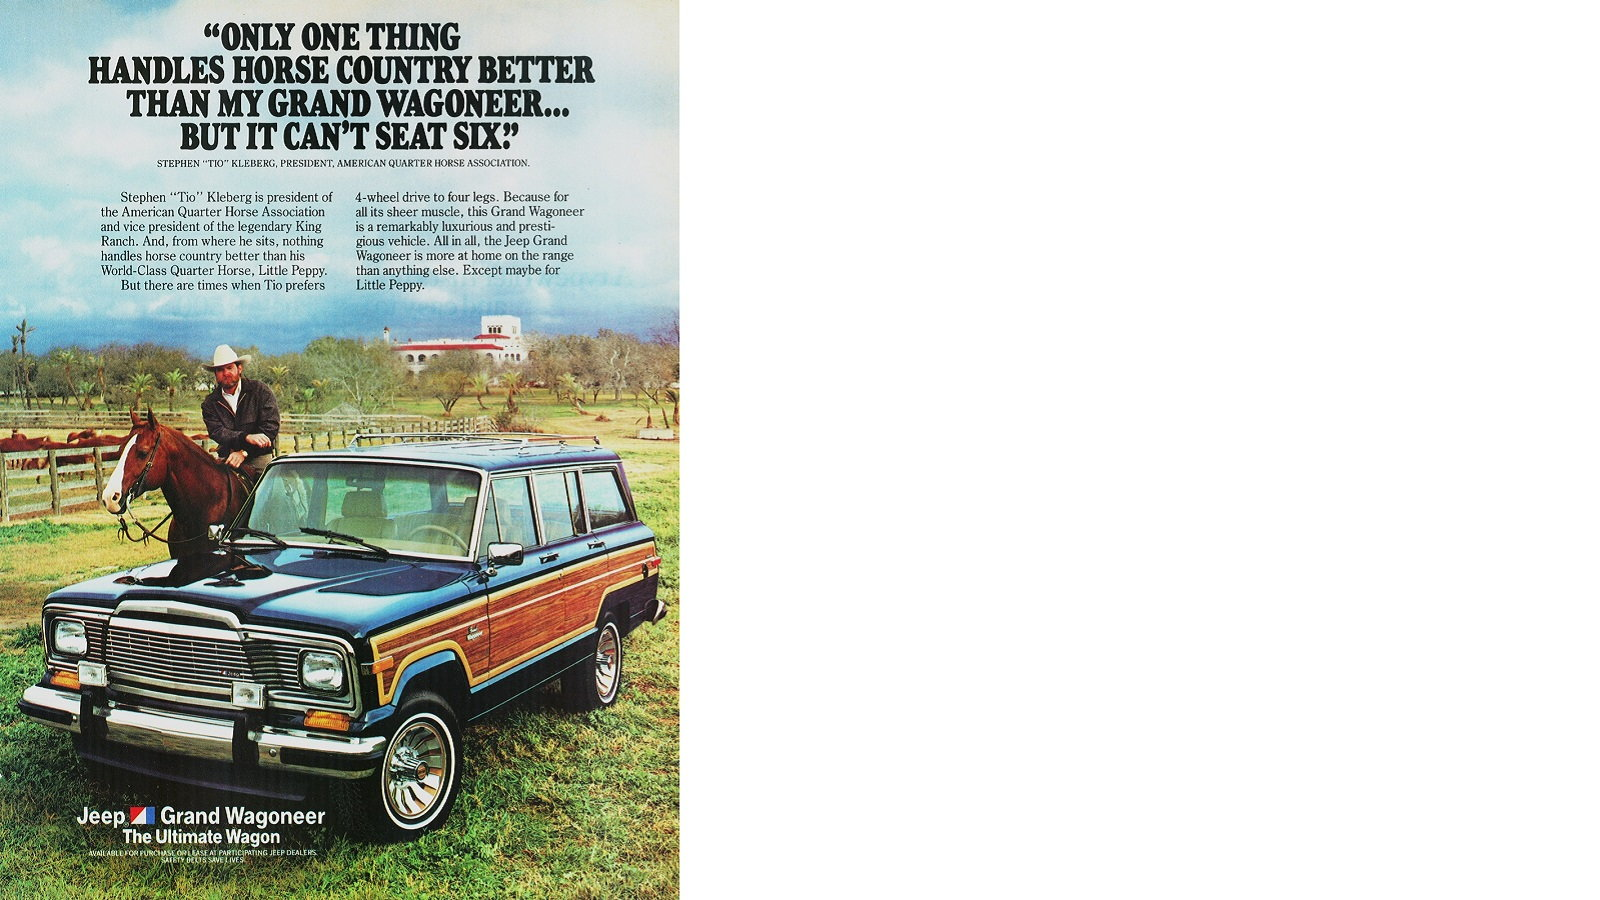 The Grand Wagoneer is better than a horse